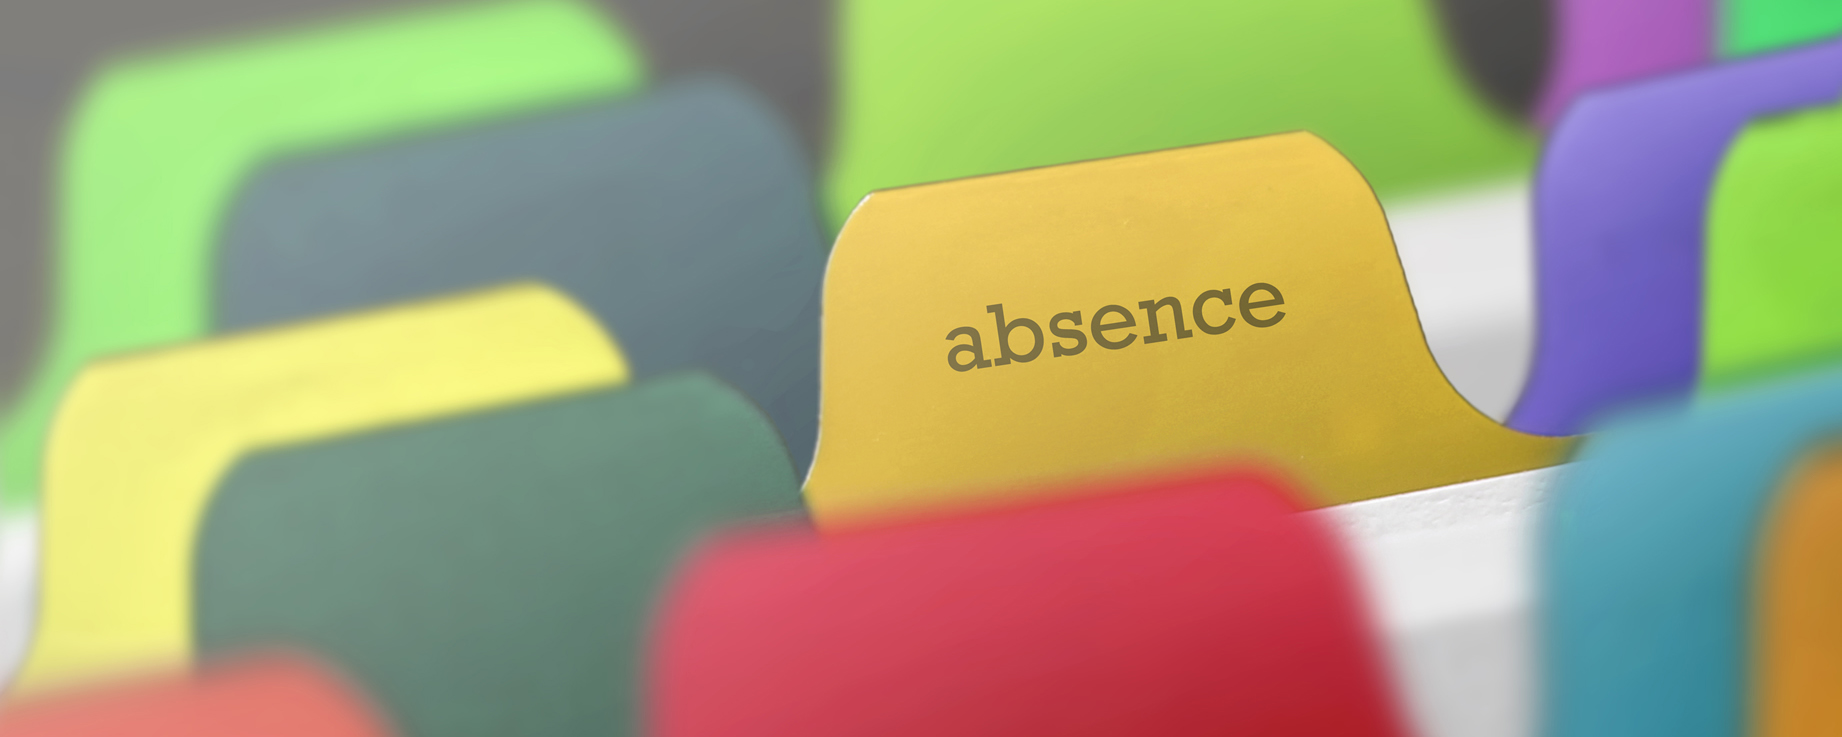 Employee absence rates on the increase - HRreview